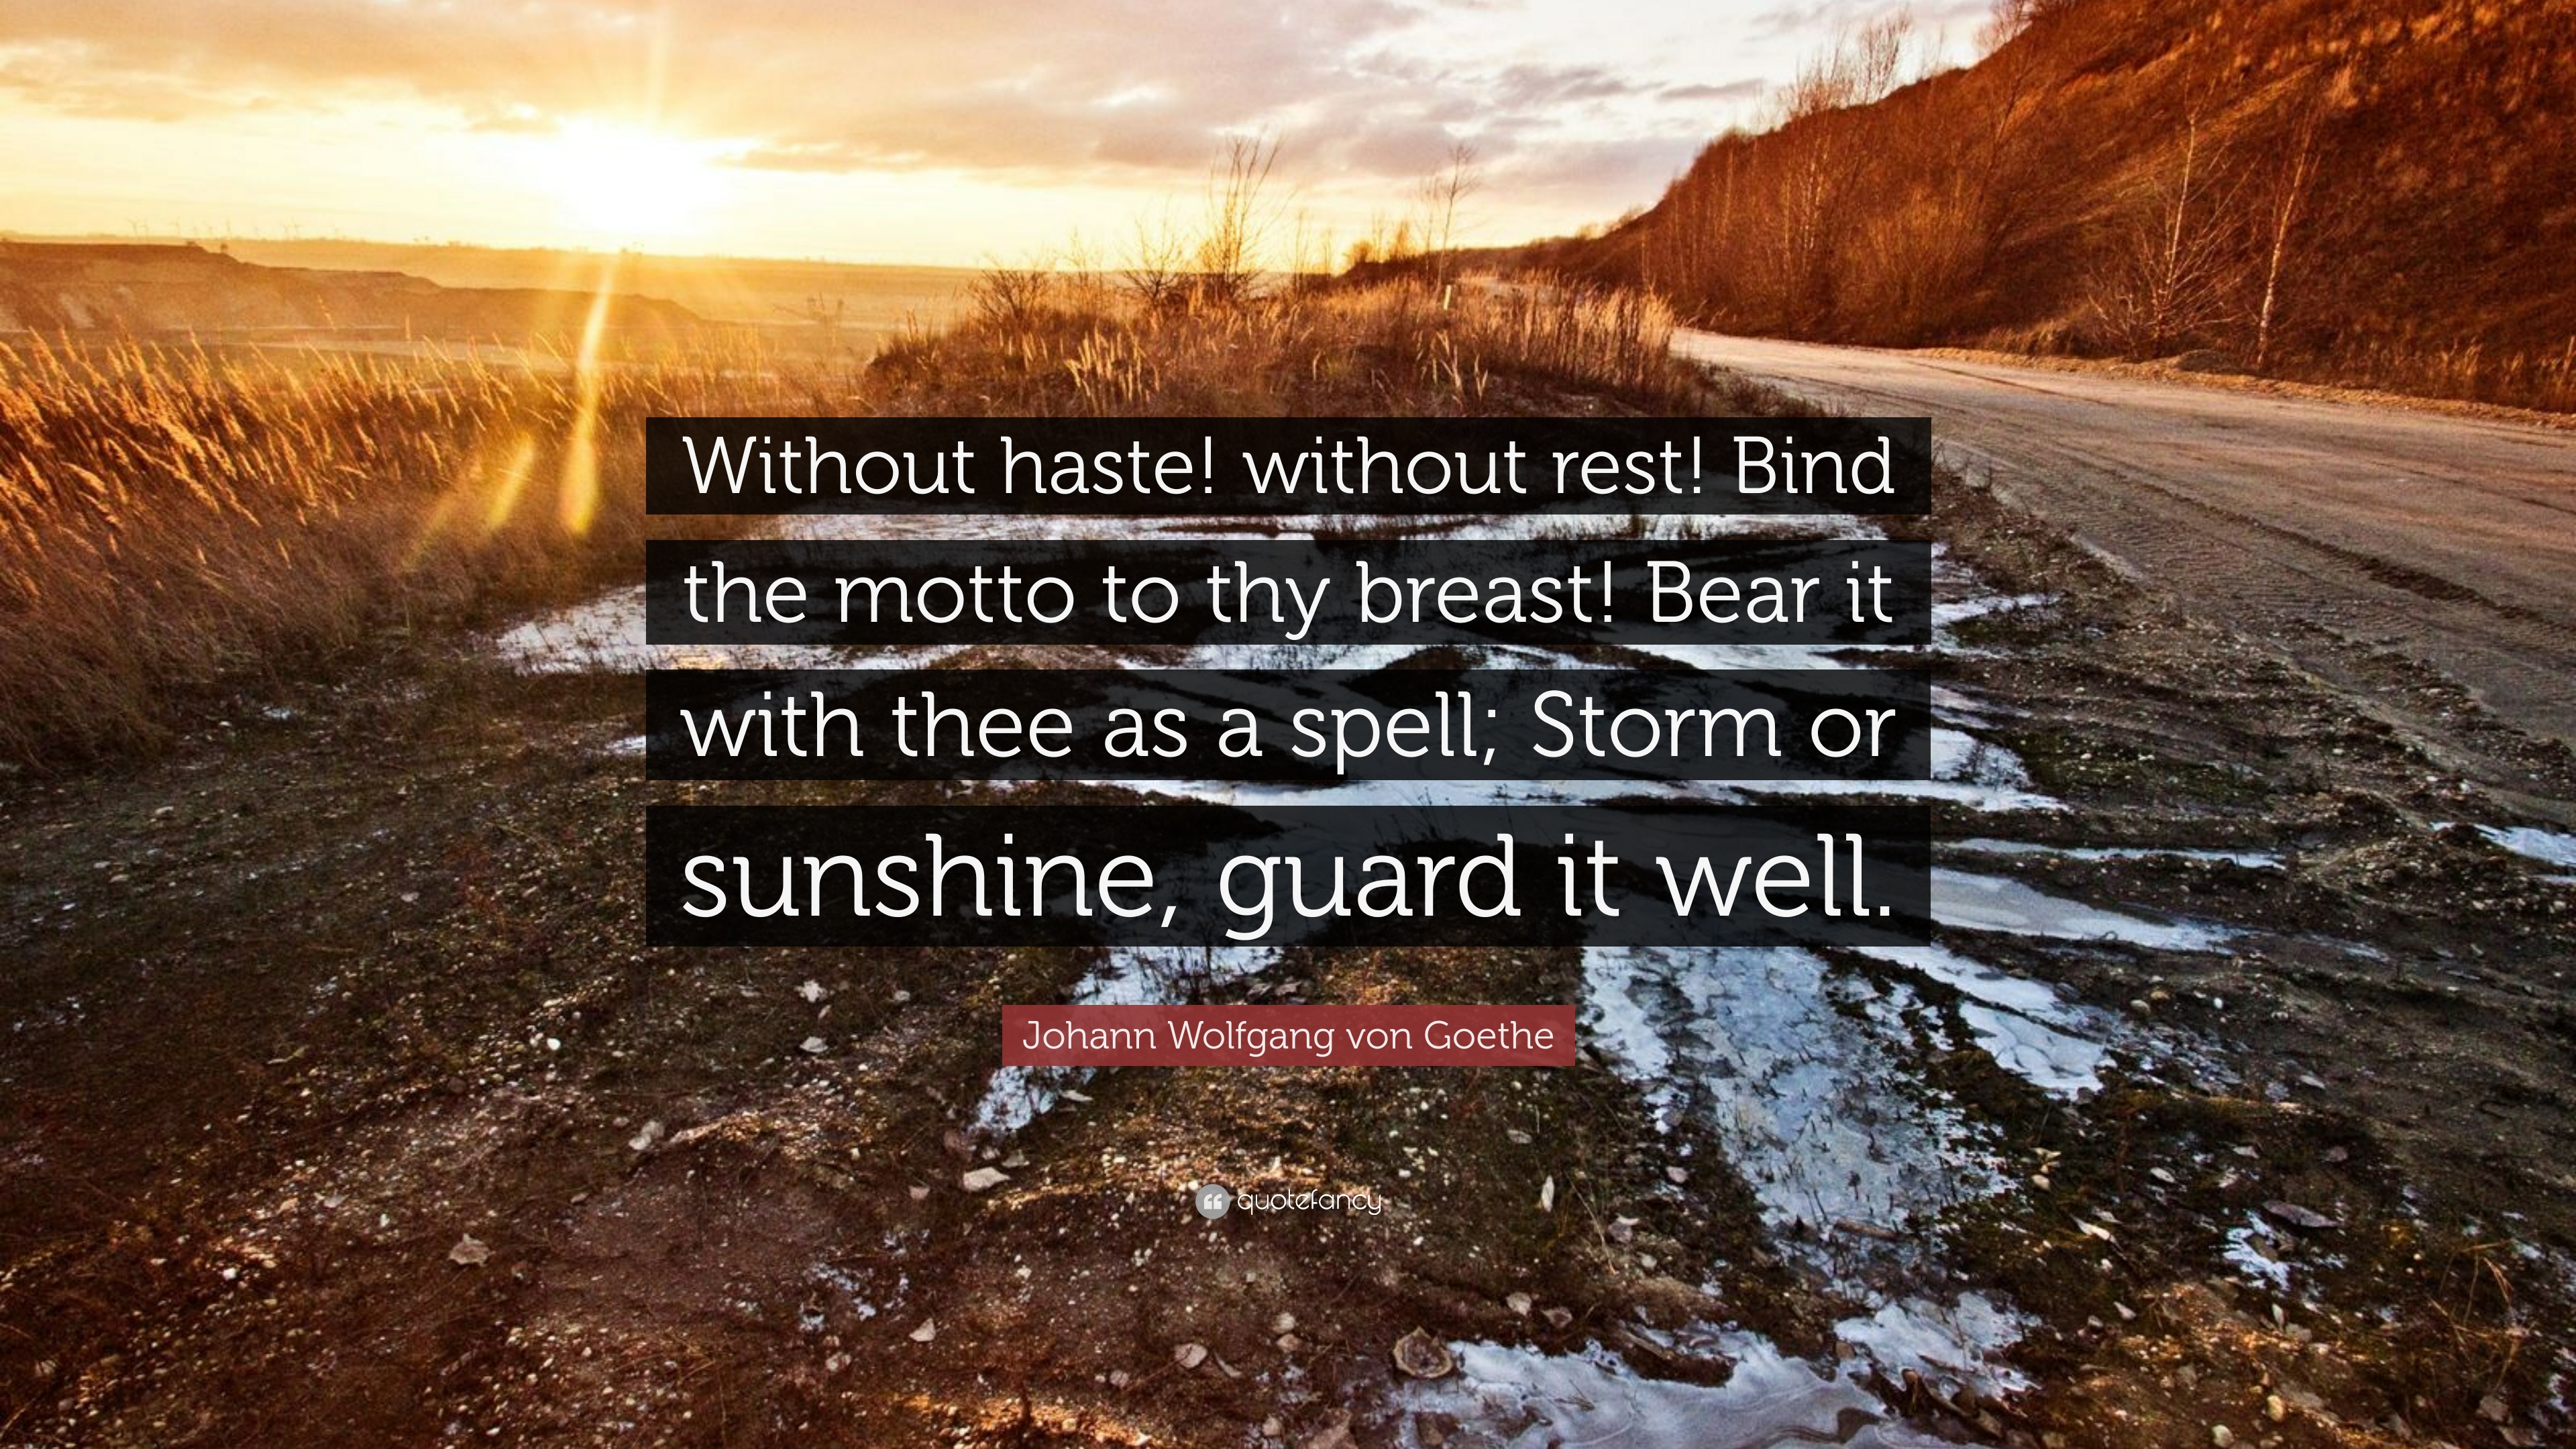 without haste without rest